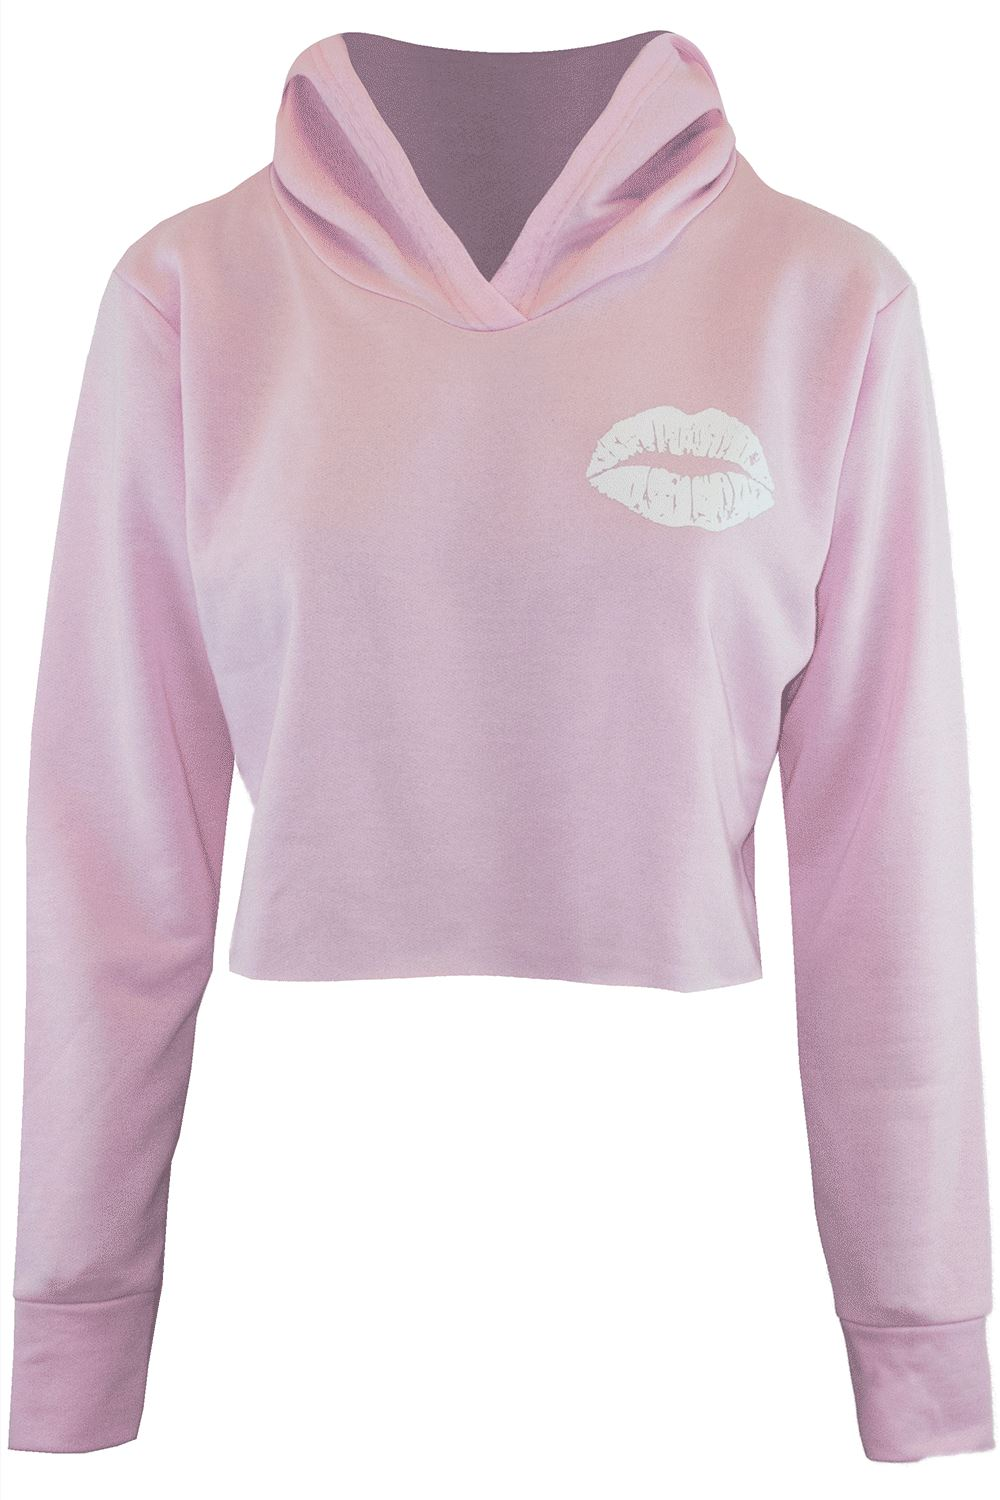 Womens Ladies Sweatshirt Cute Lips Hooded Fleece Oversized Long ... e8b945c7f